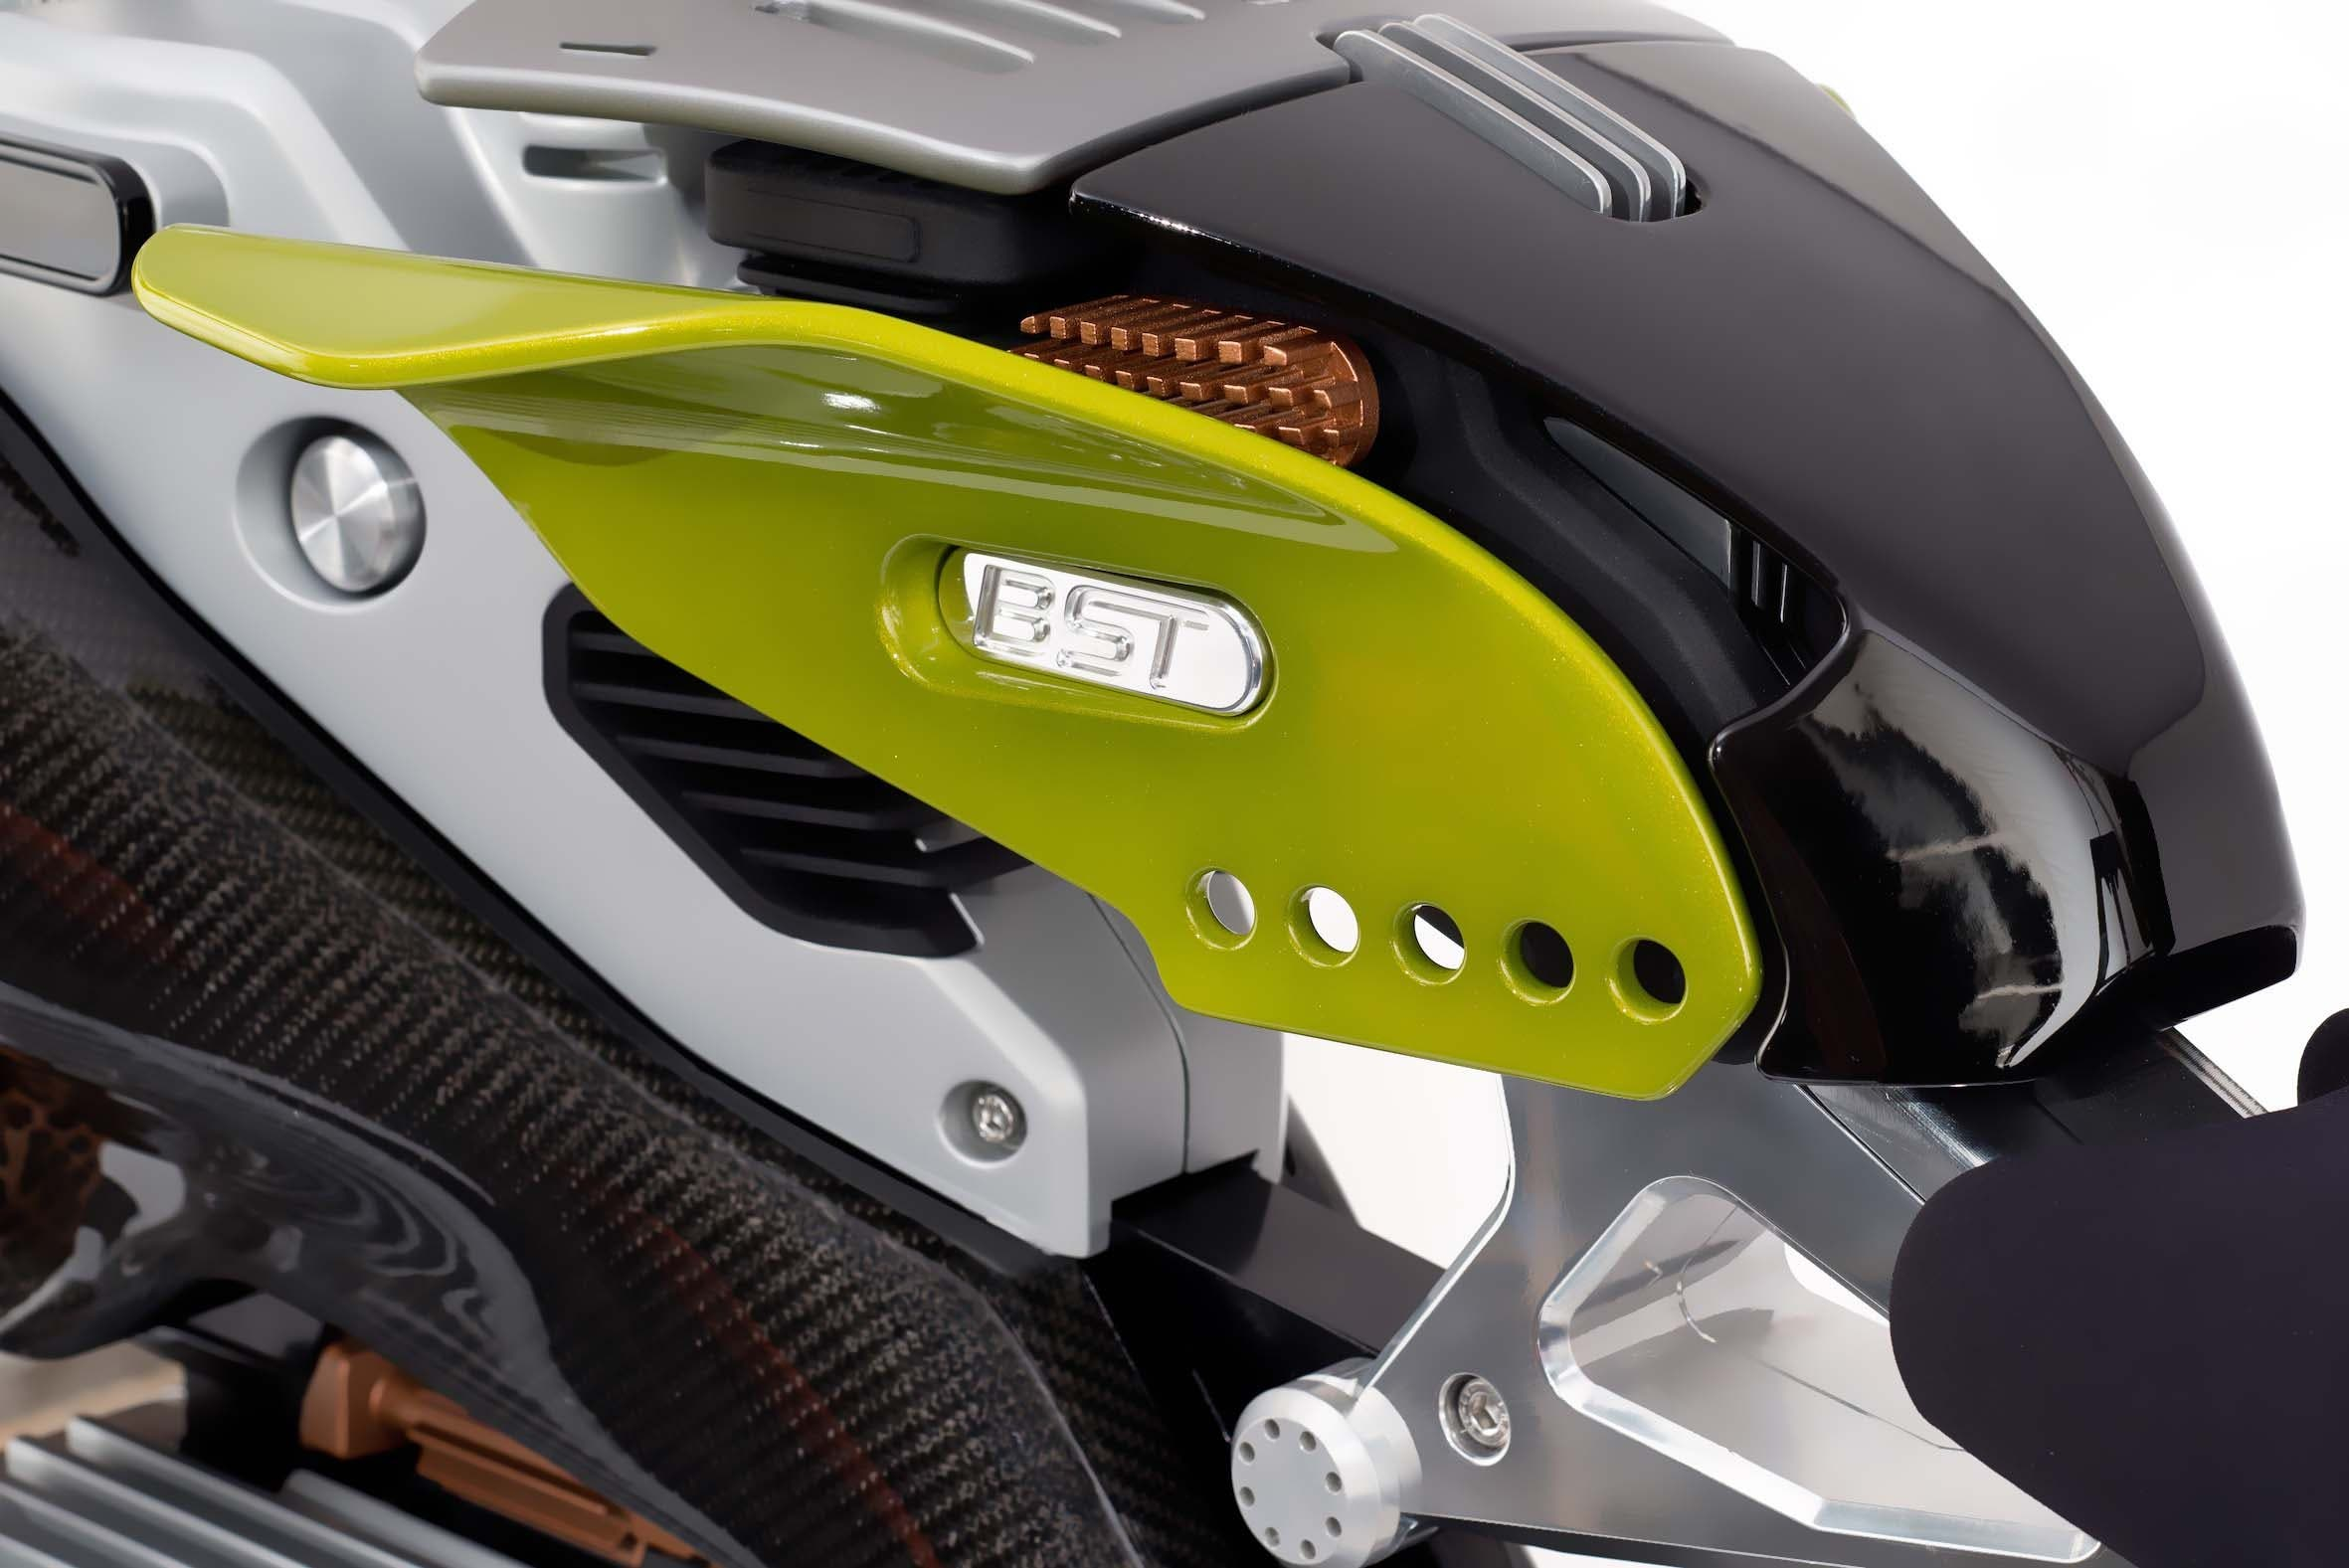 BST HyperTEK electric motorcycle